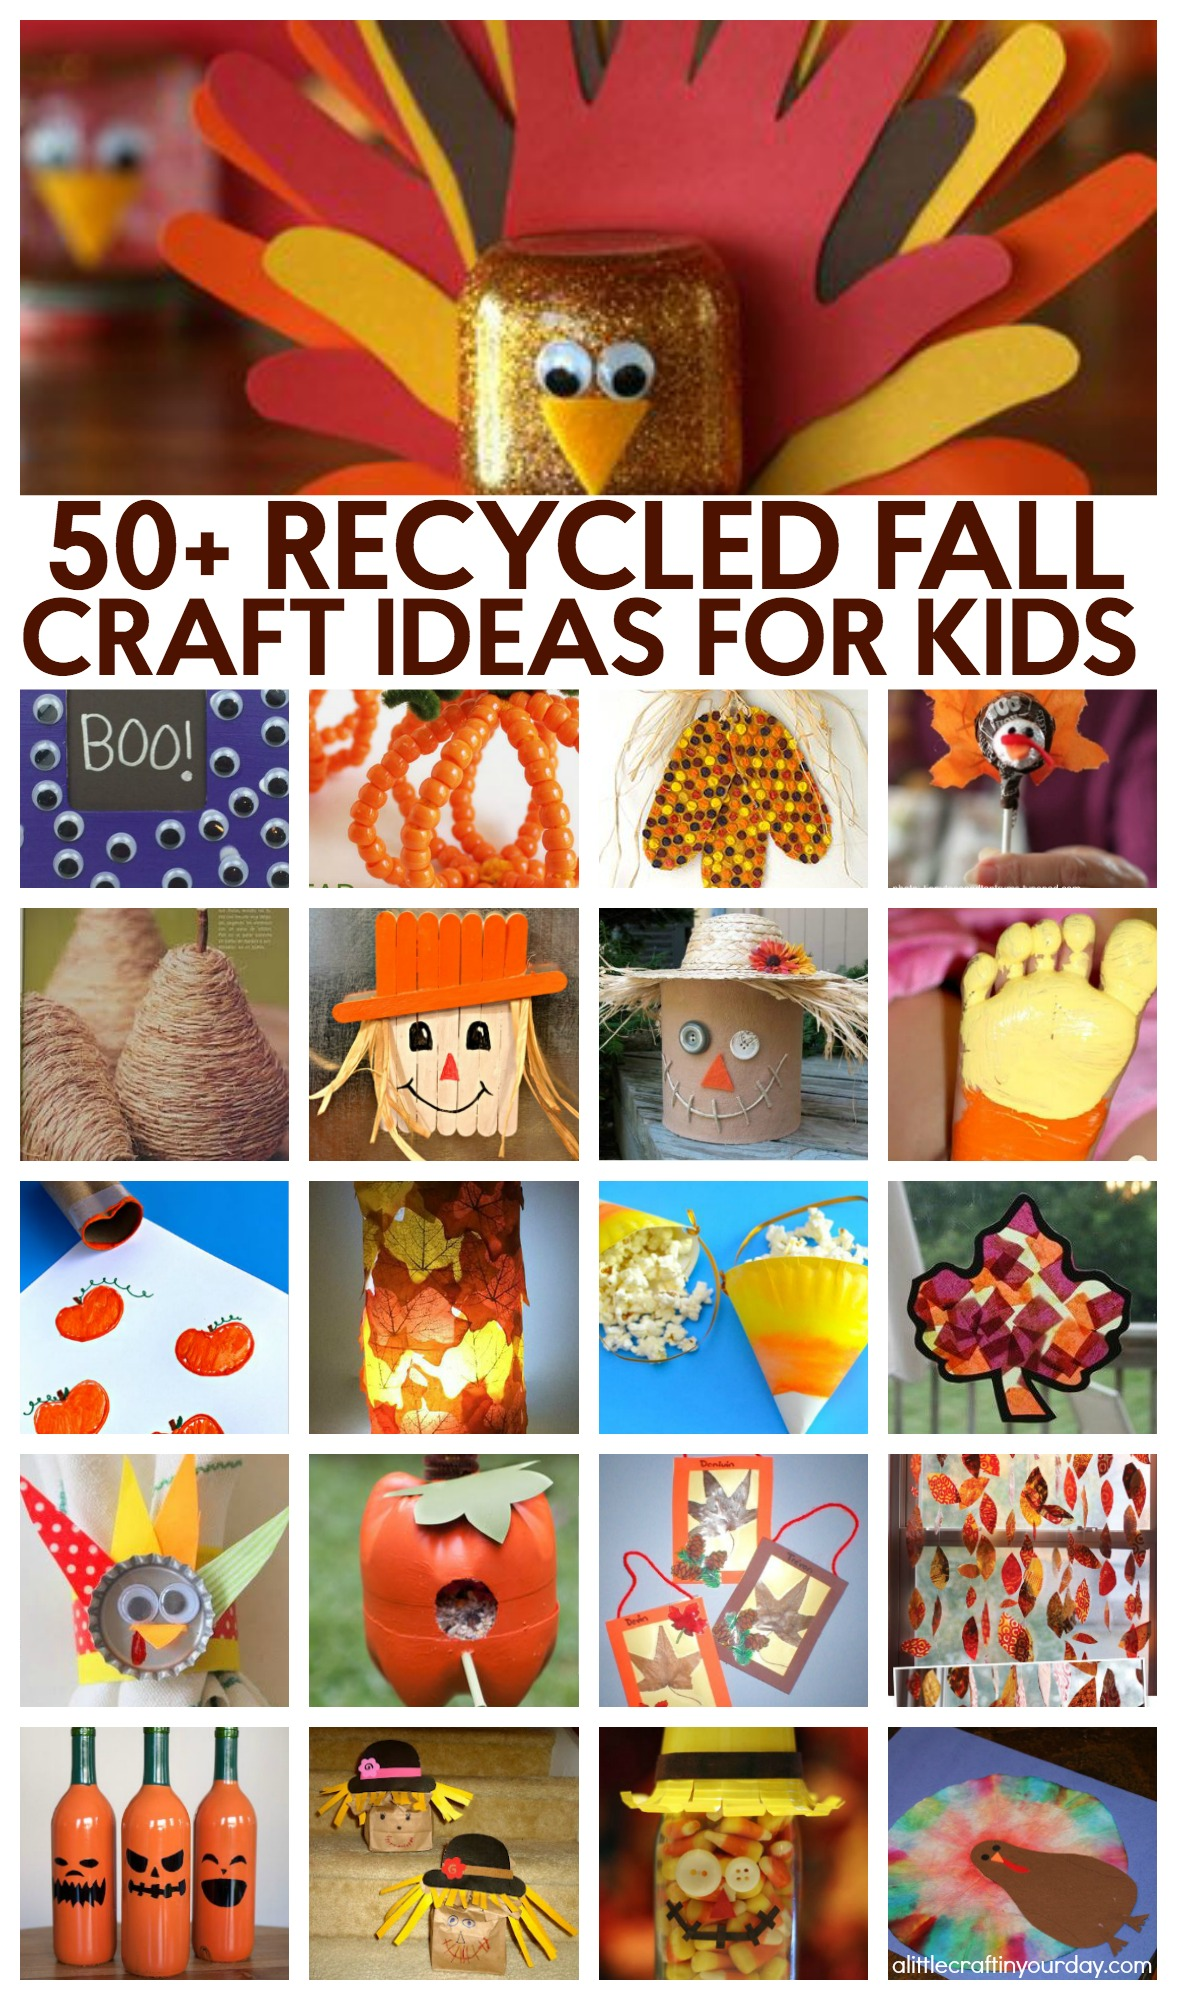 51 Recycled Fall Kids Crafts - A Little Craft In Your Day